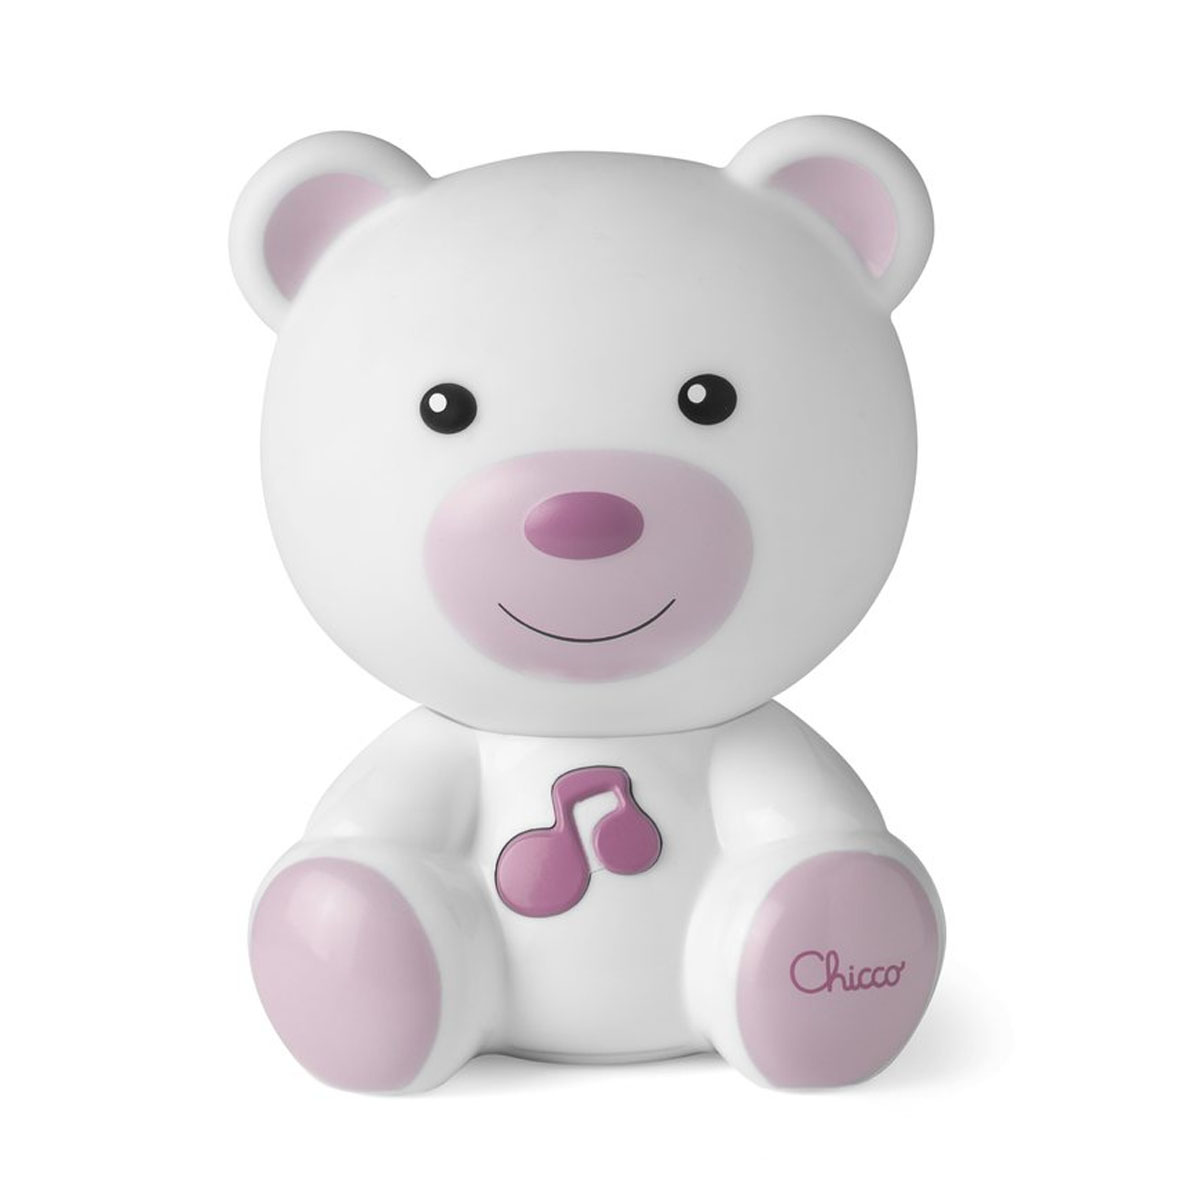 Veilleuse musicale Dreamlight Rose  de Chicco